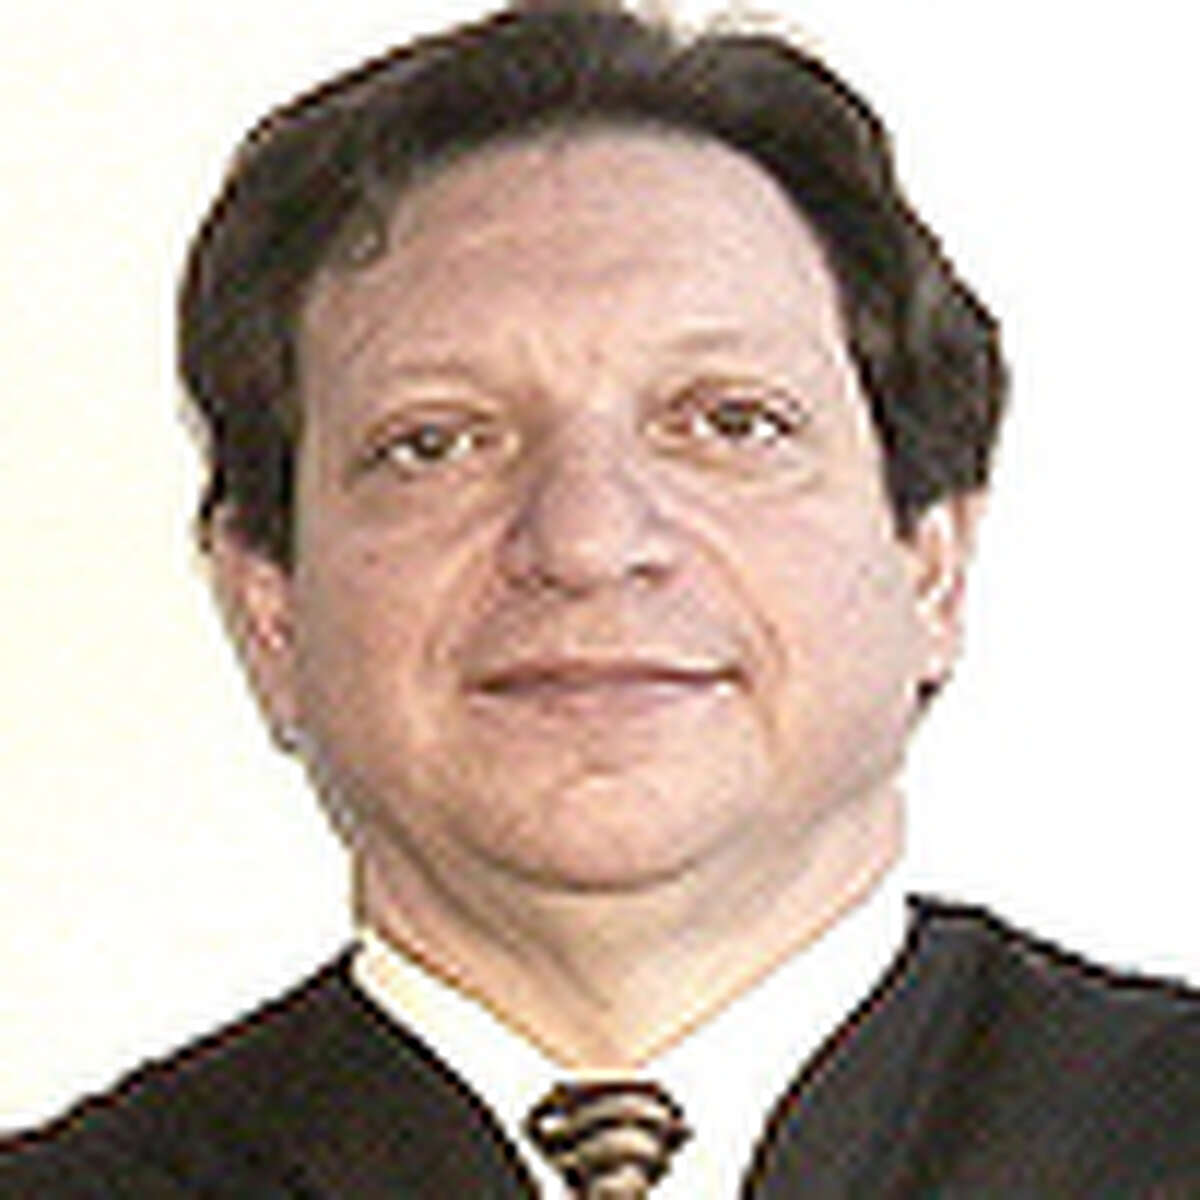 State Supreme Court Justice Vito C. Caruso of Rotterdam, the state's deputy administrative judge for all courts outside New York City, is set to retire at the end of the month.